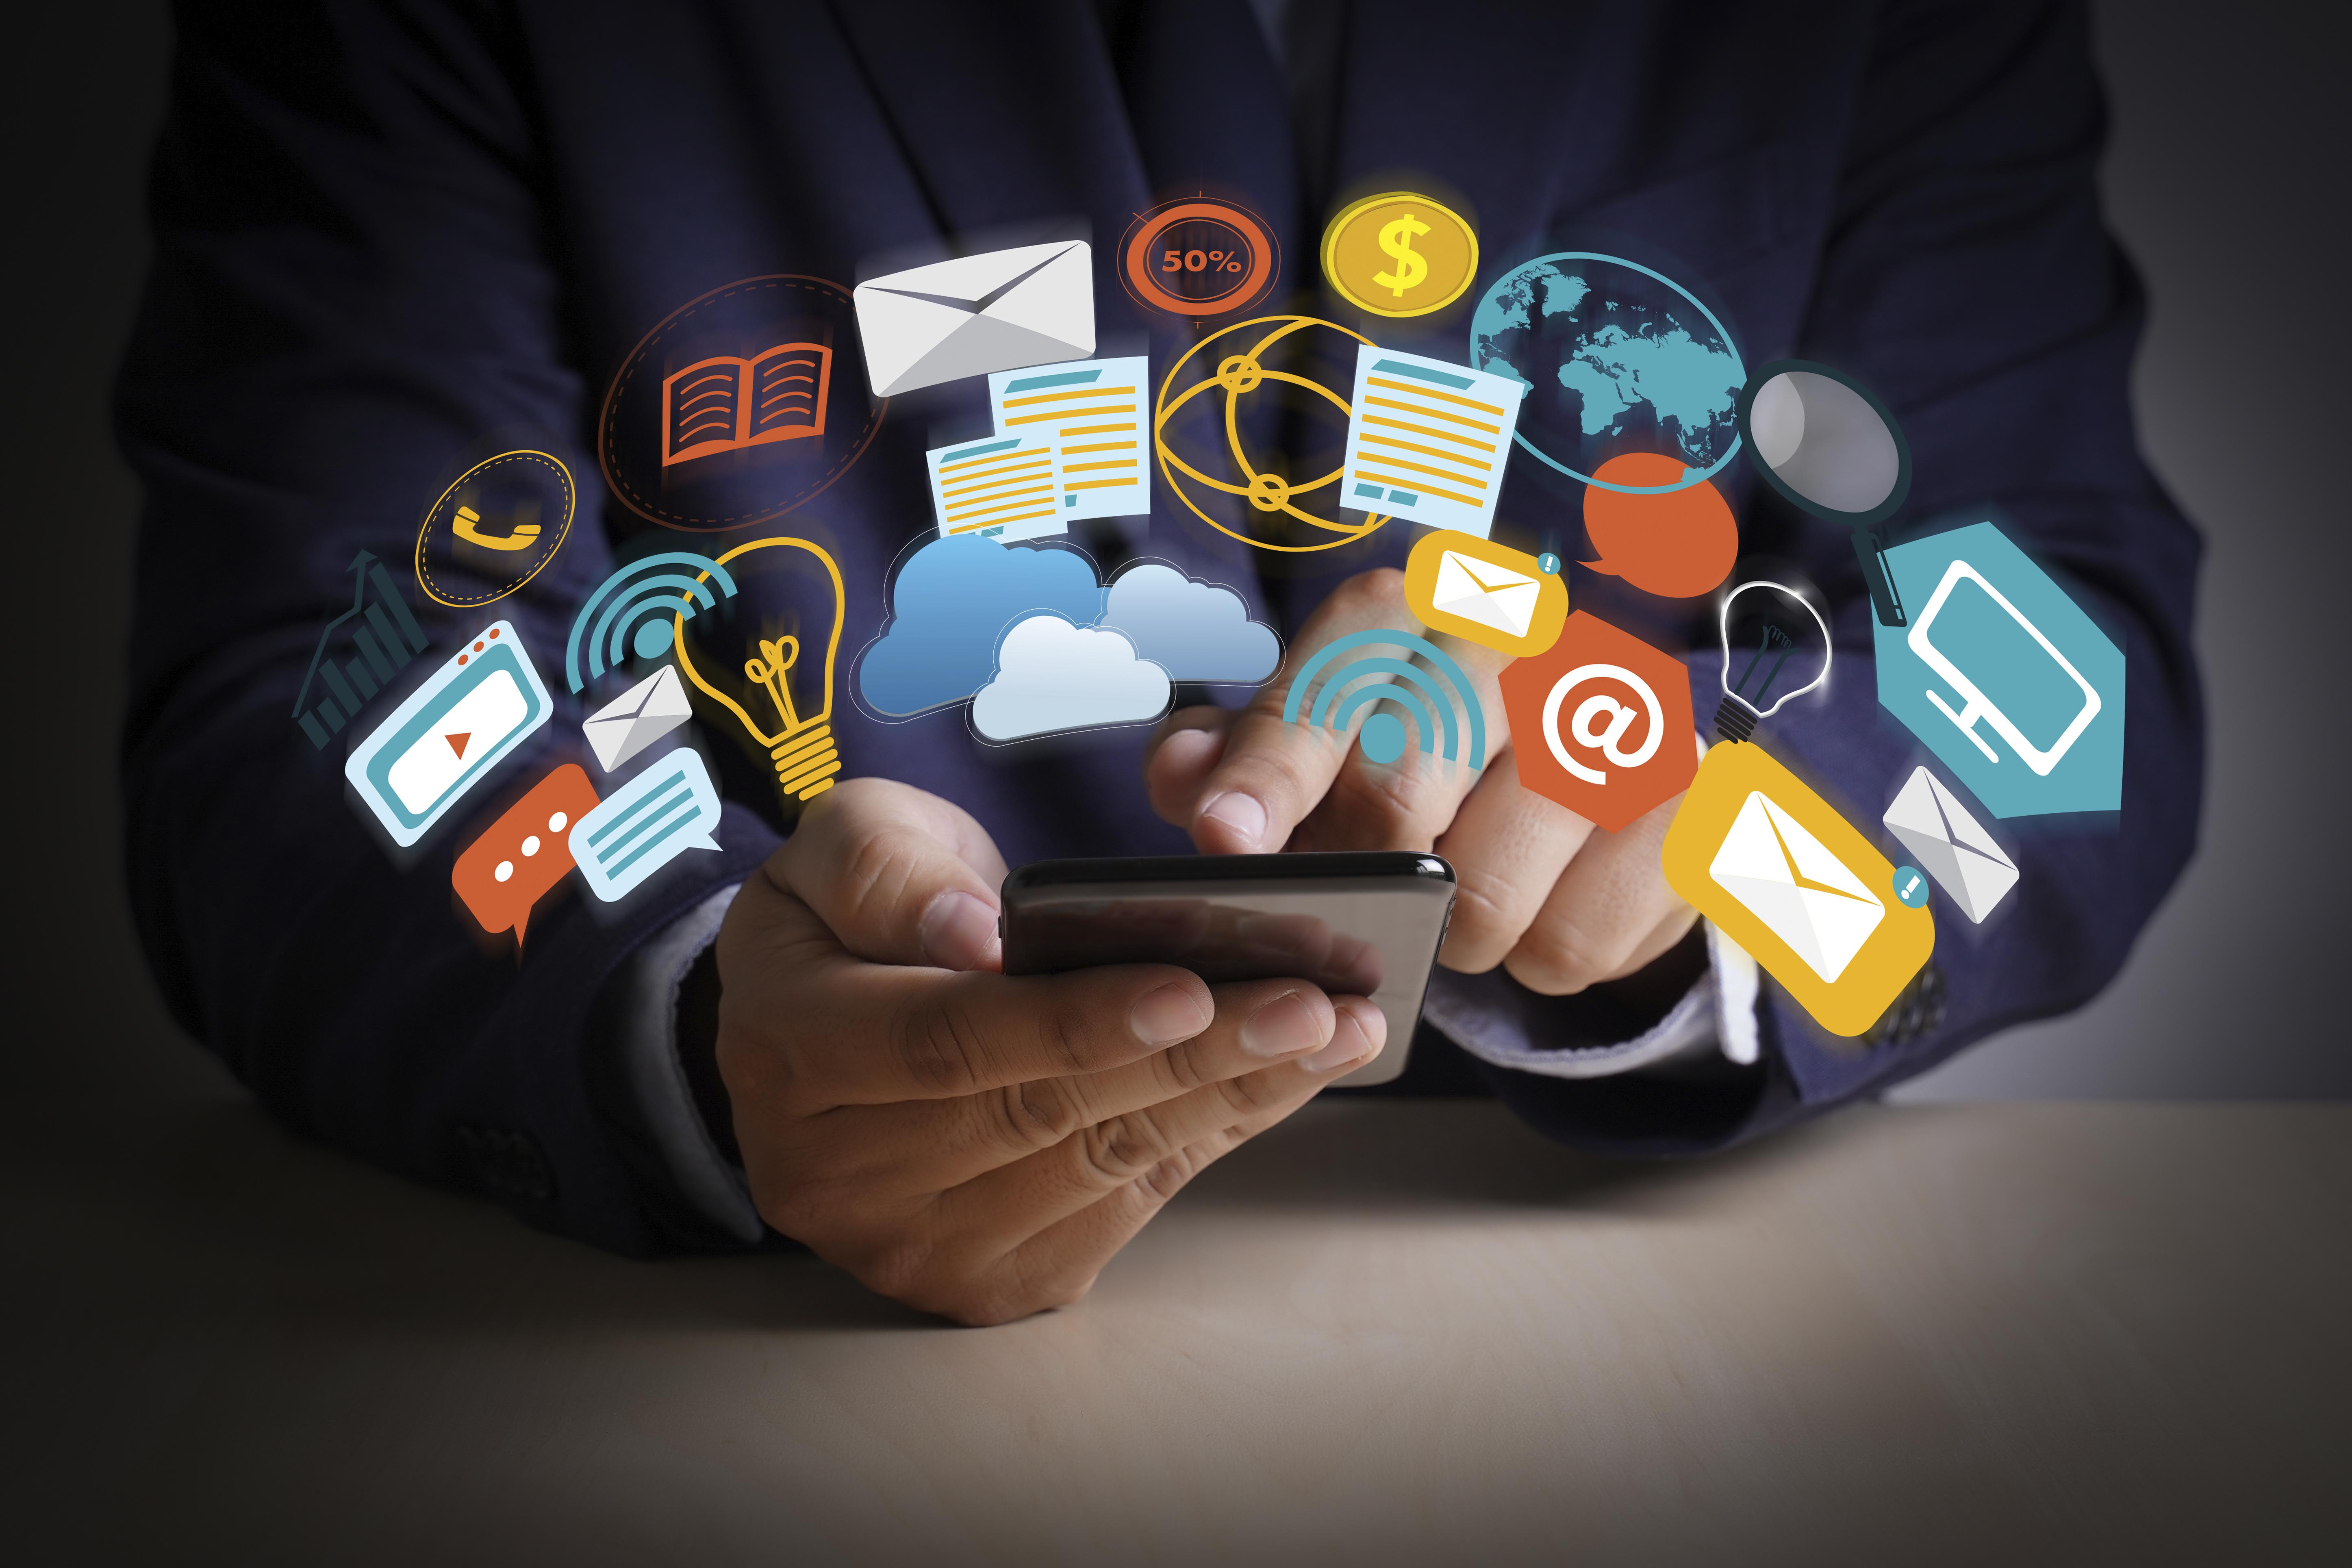 man interacting with a variety of applications on his smart phone